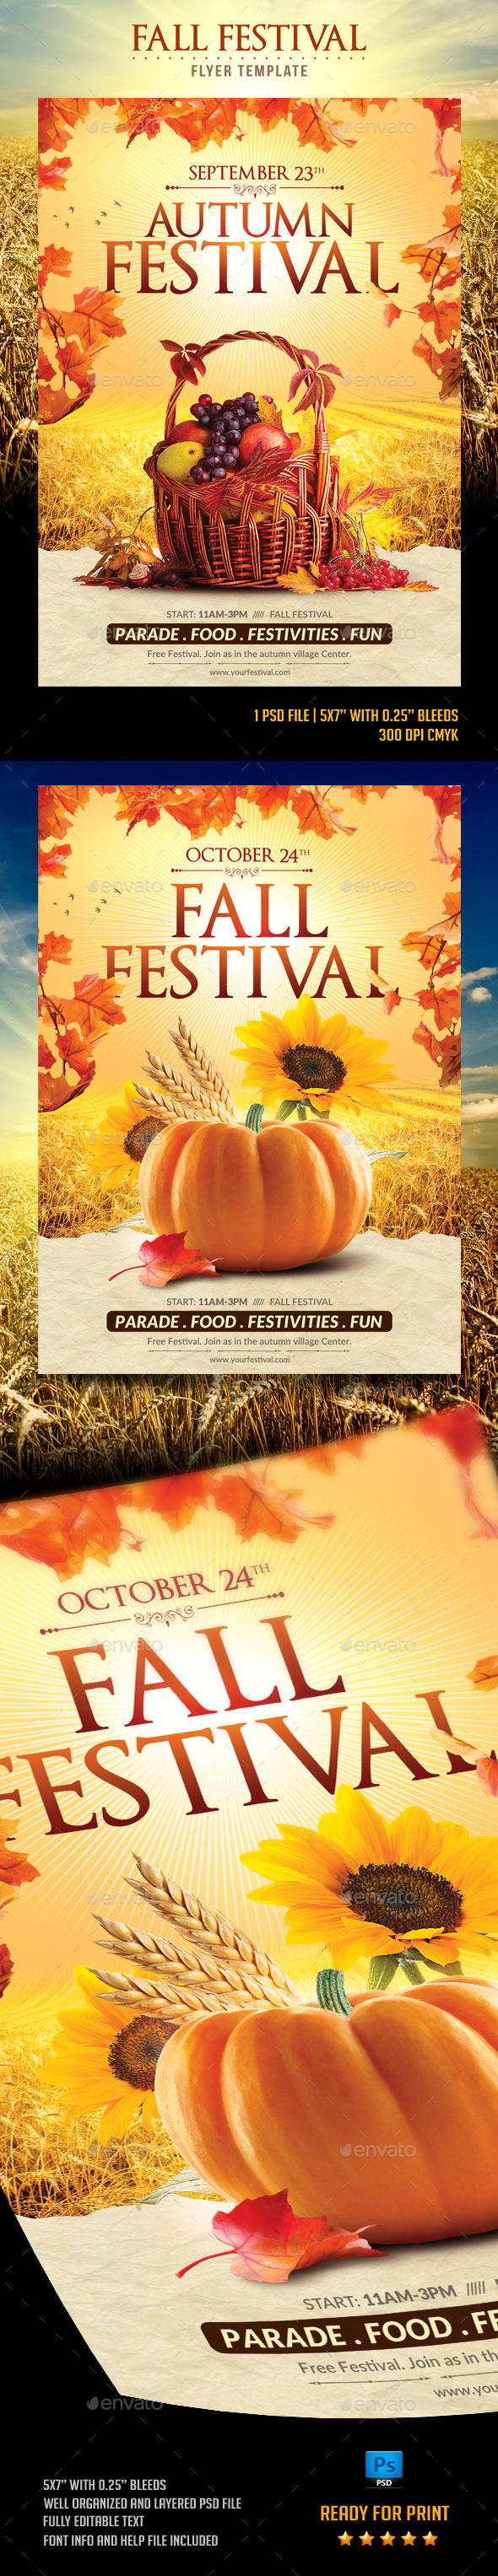 Fall Festival Flyer Template - Flyers Print Templates